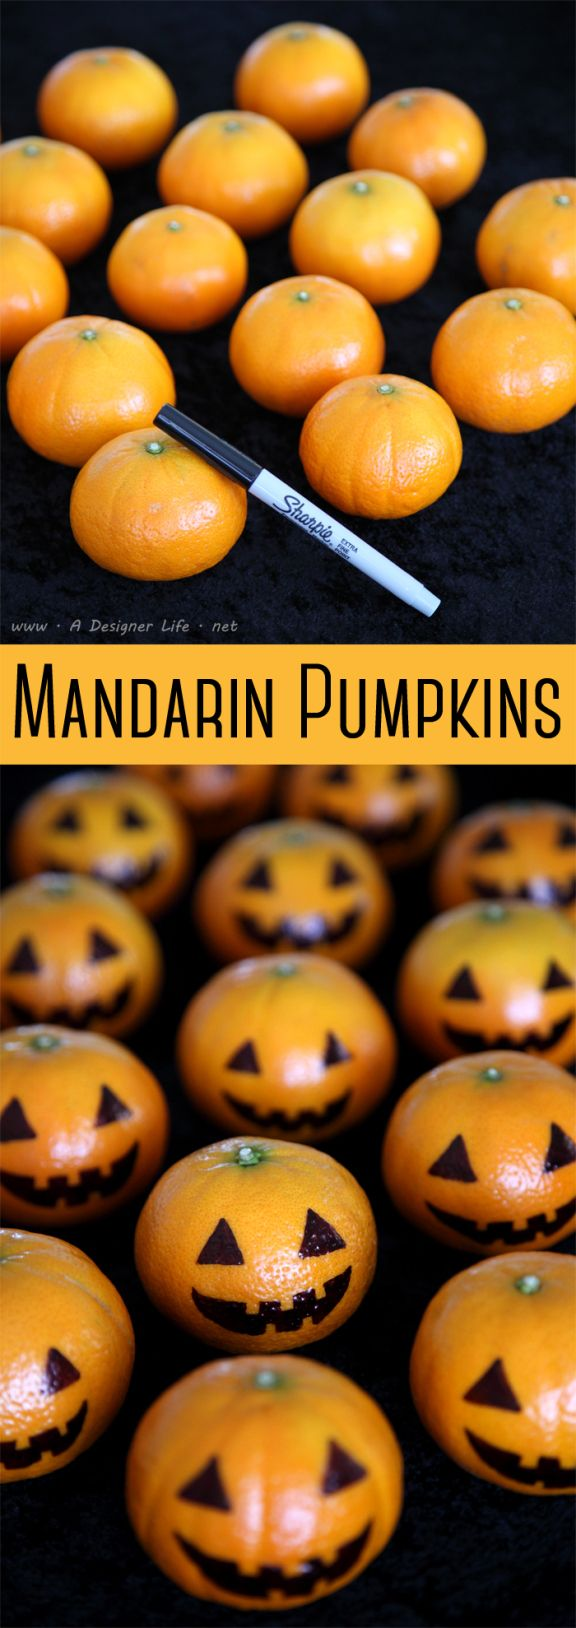 Food Design: 5 Easy Halloween Food Ideas